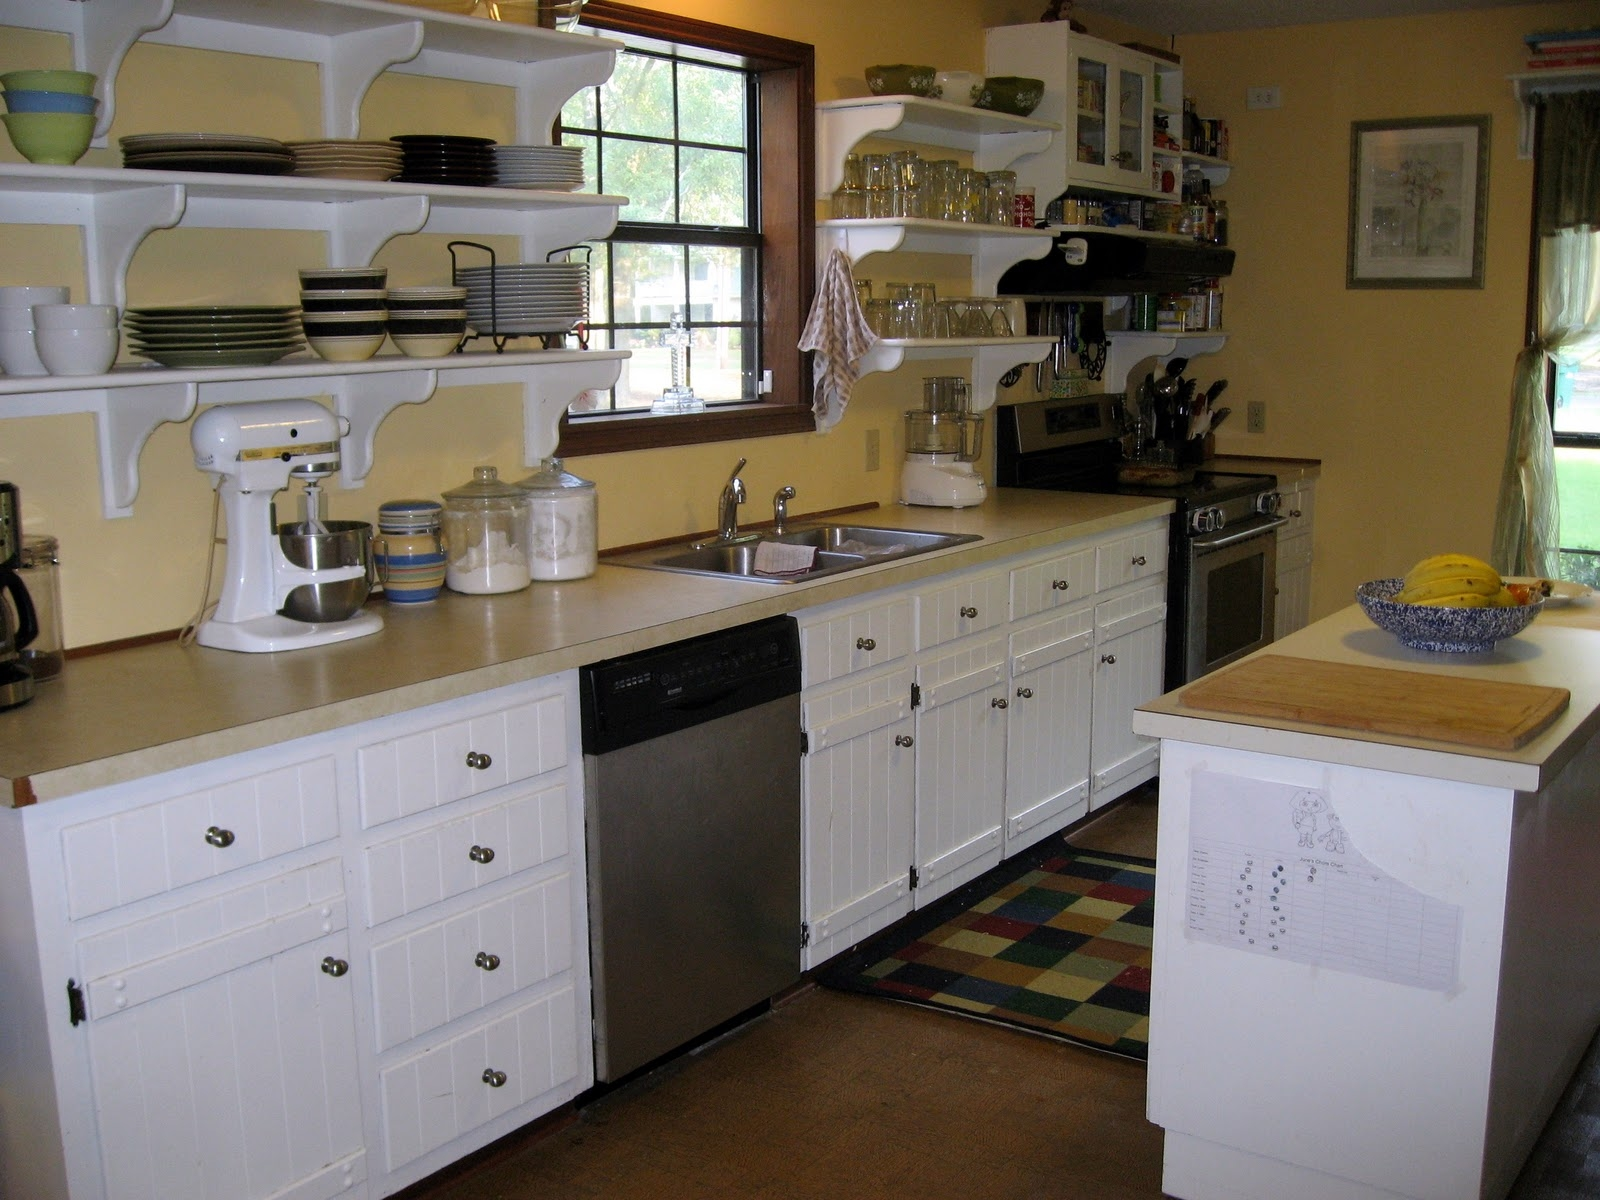 Open Kitchen Shelves Instead Of Cabinets